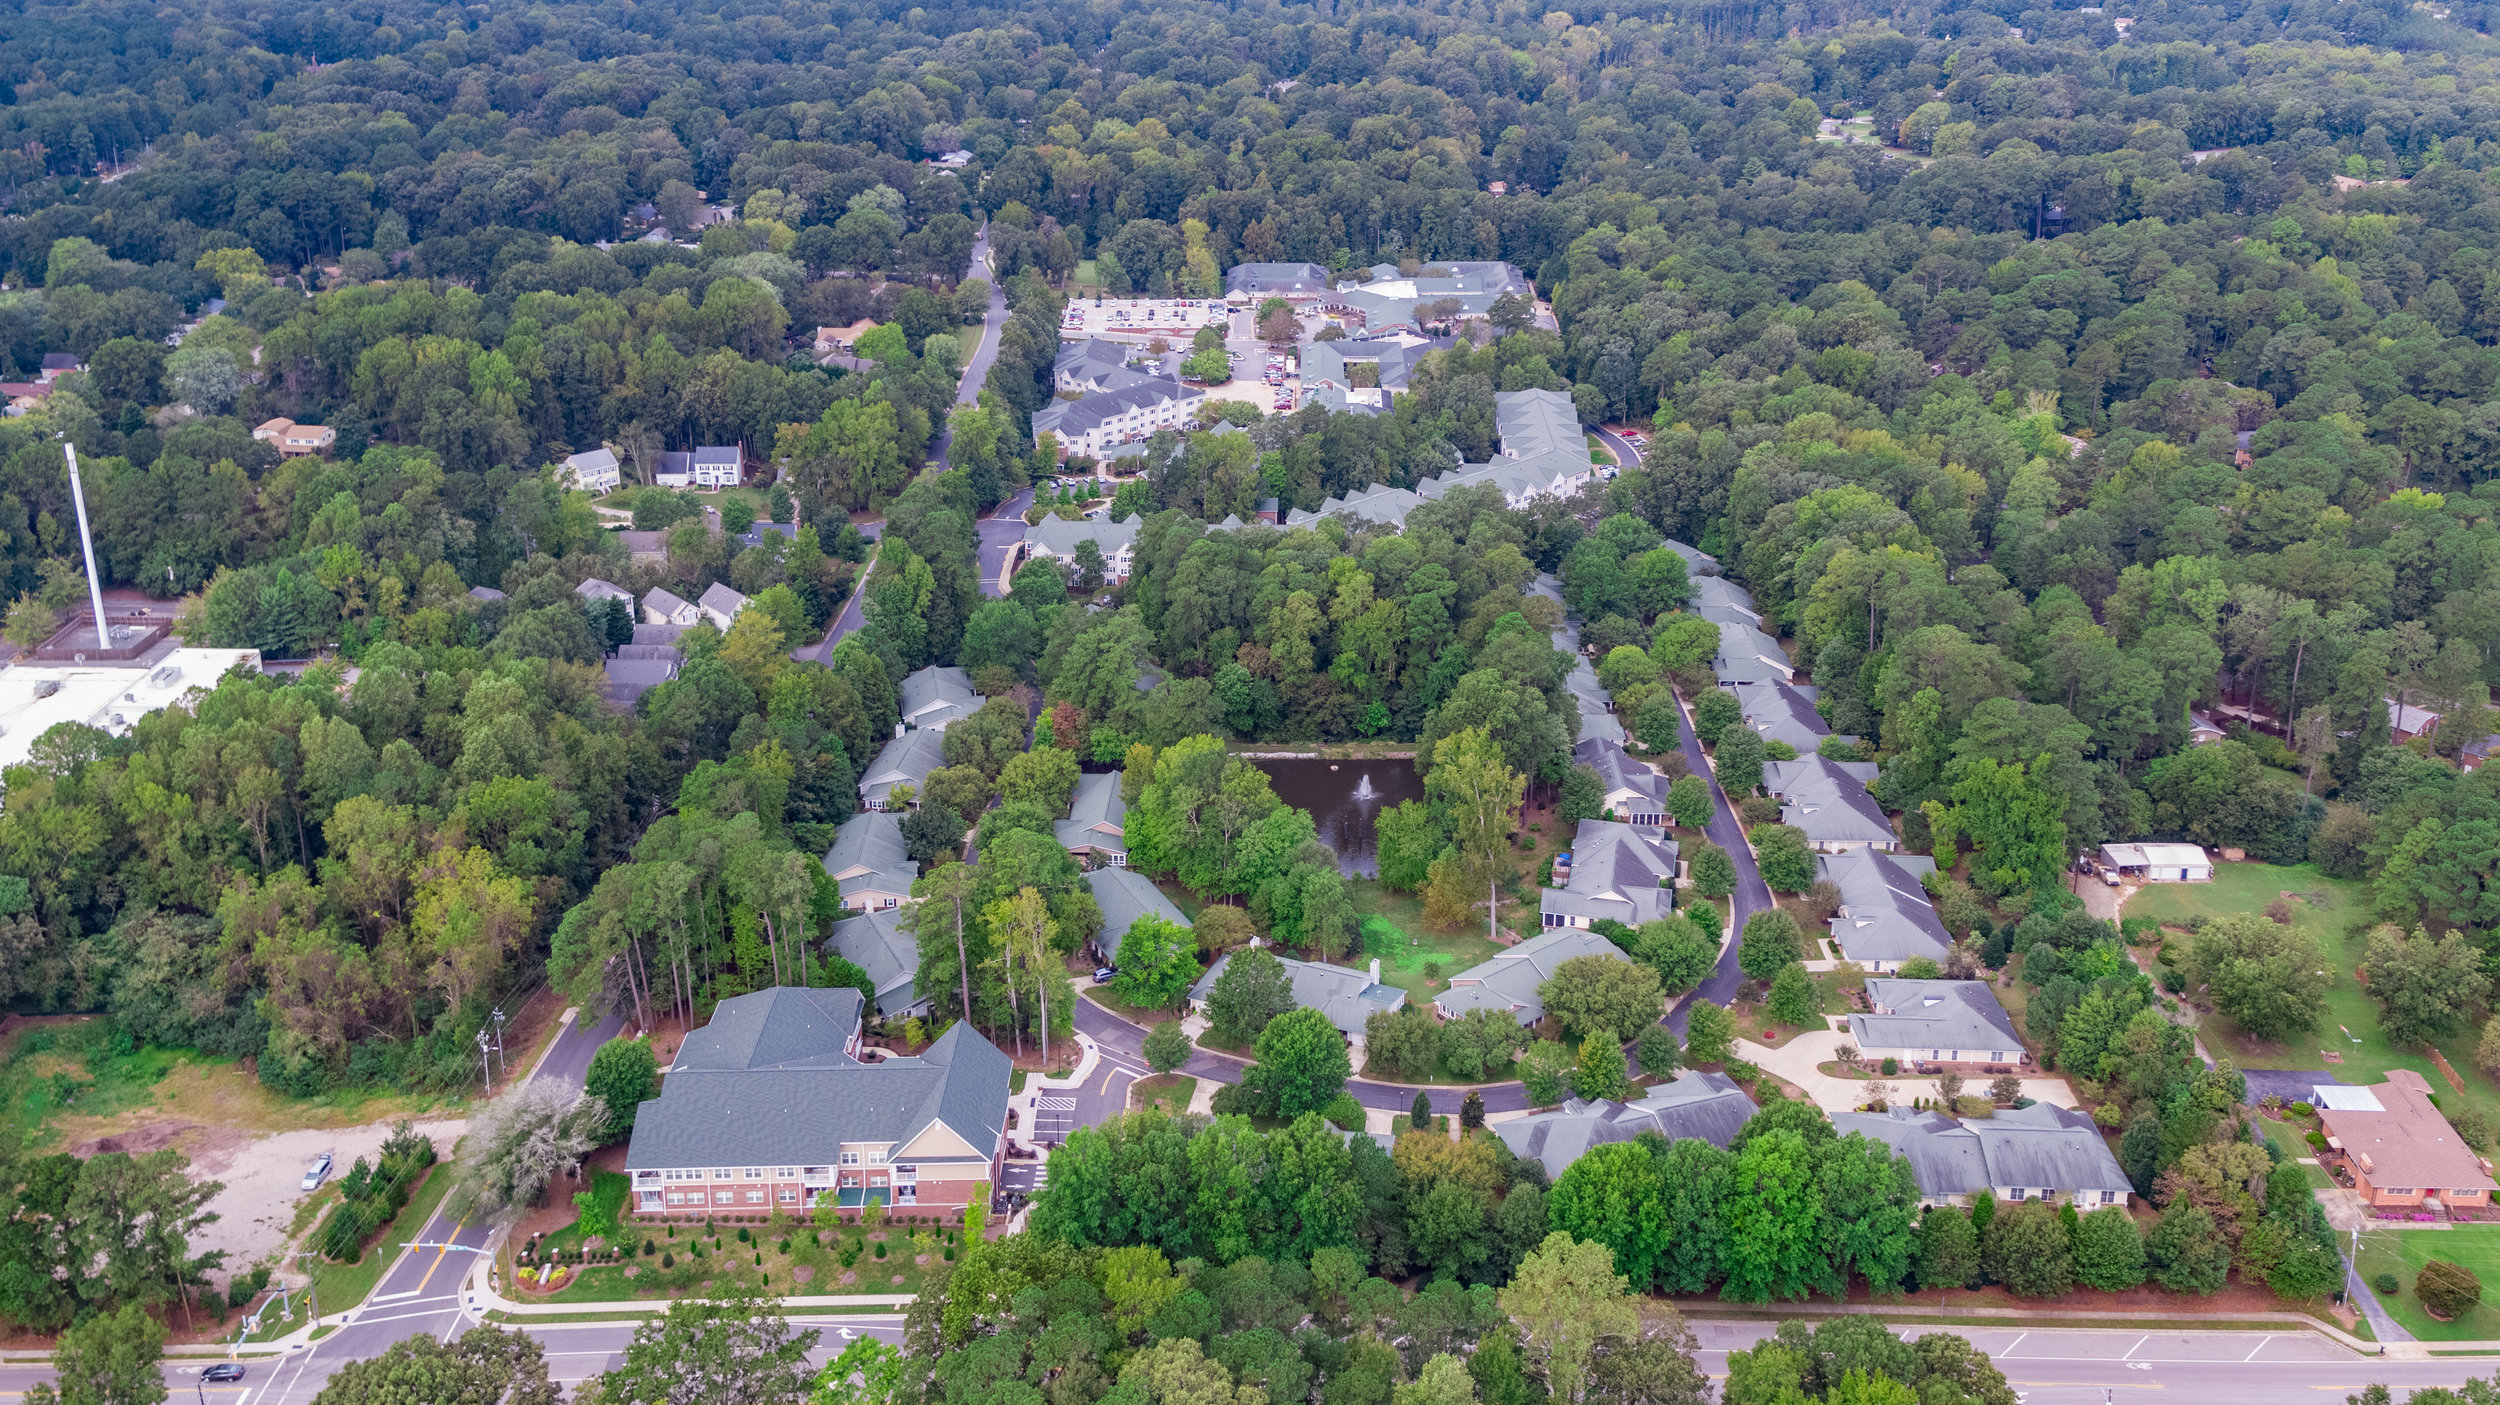 real-estate-photography-drone-photographer-drone-greensboro-nc-triad-216.jpg